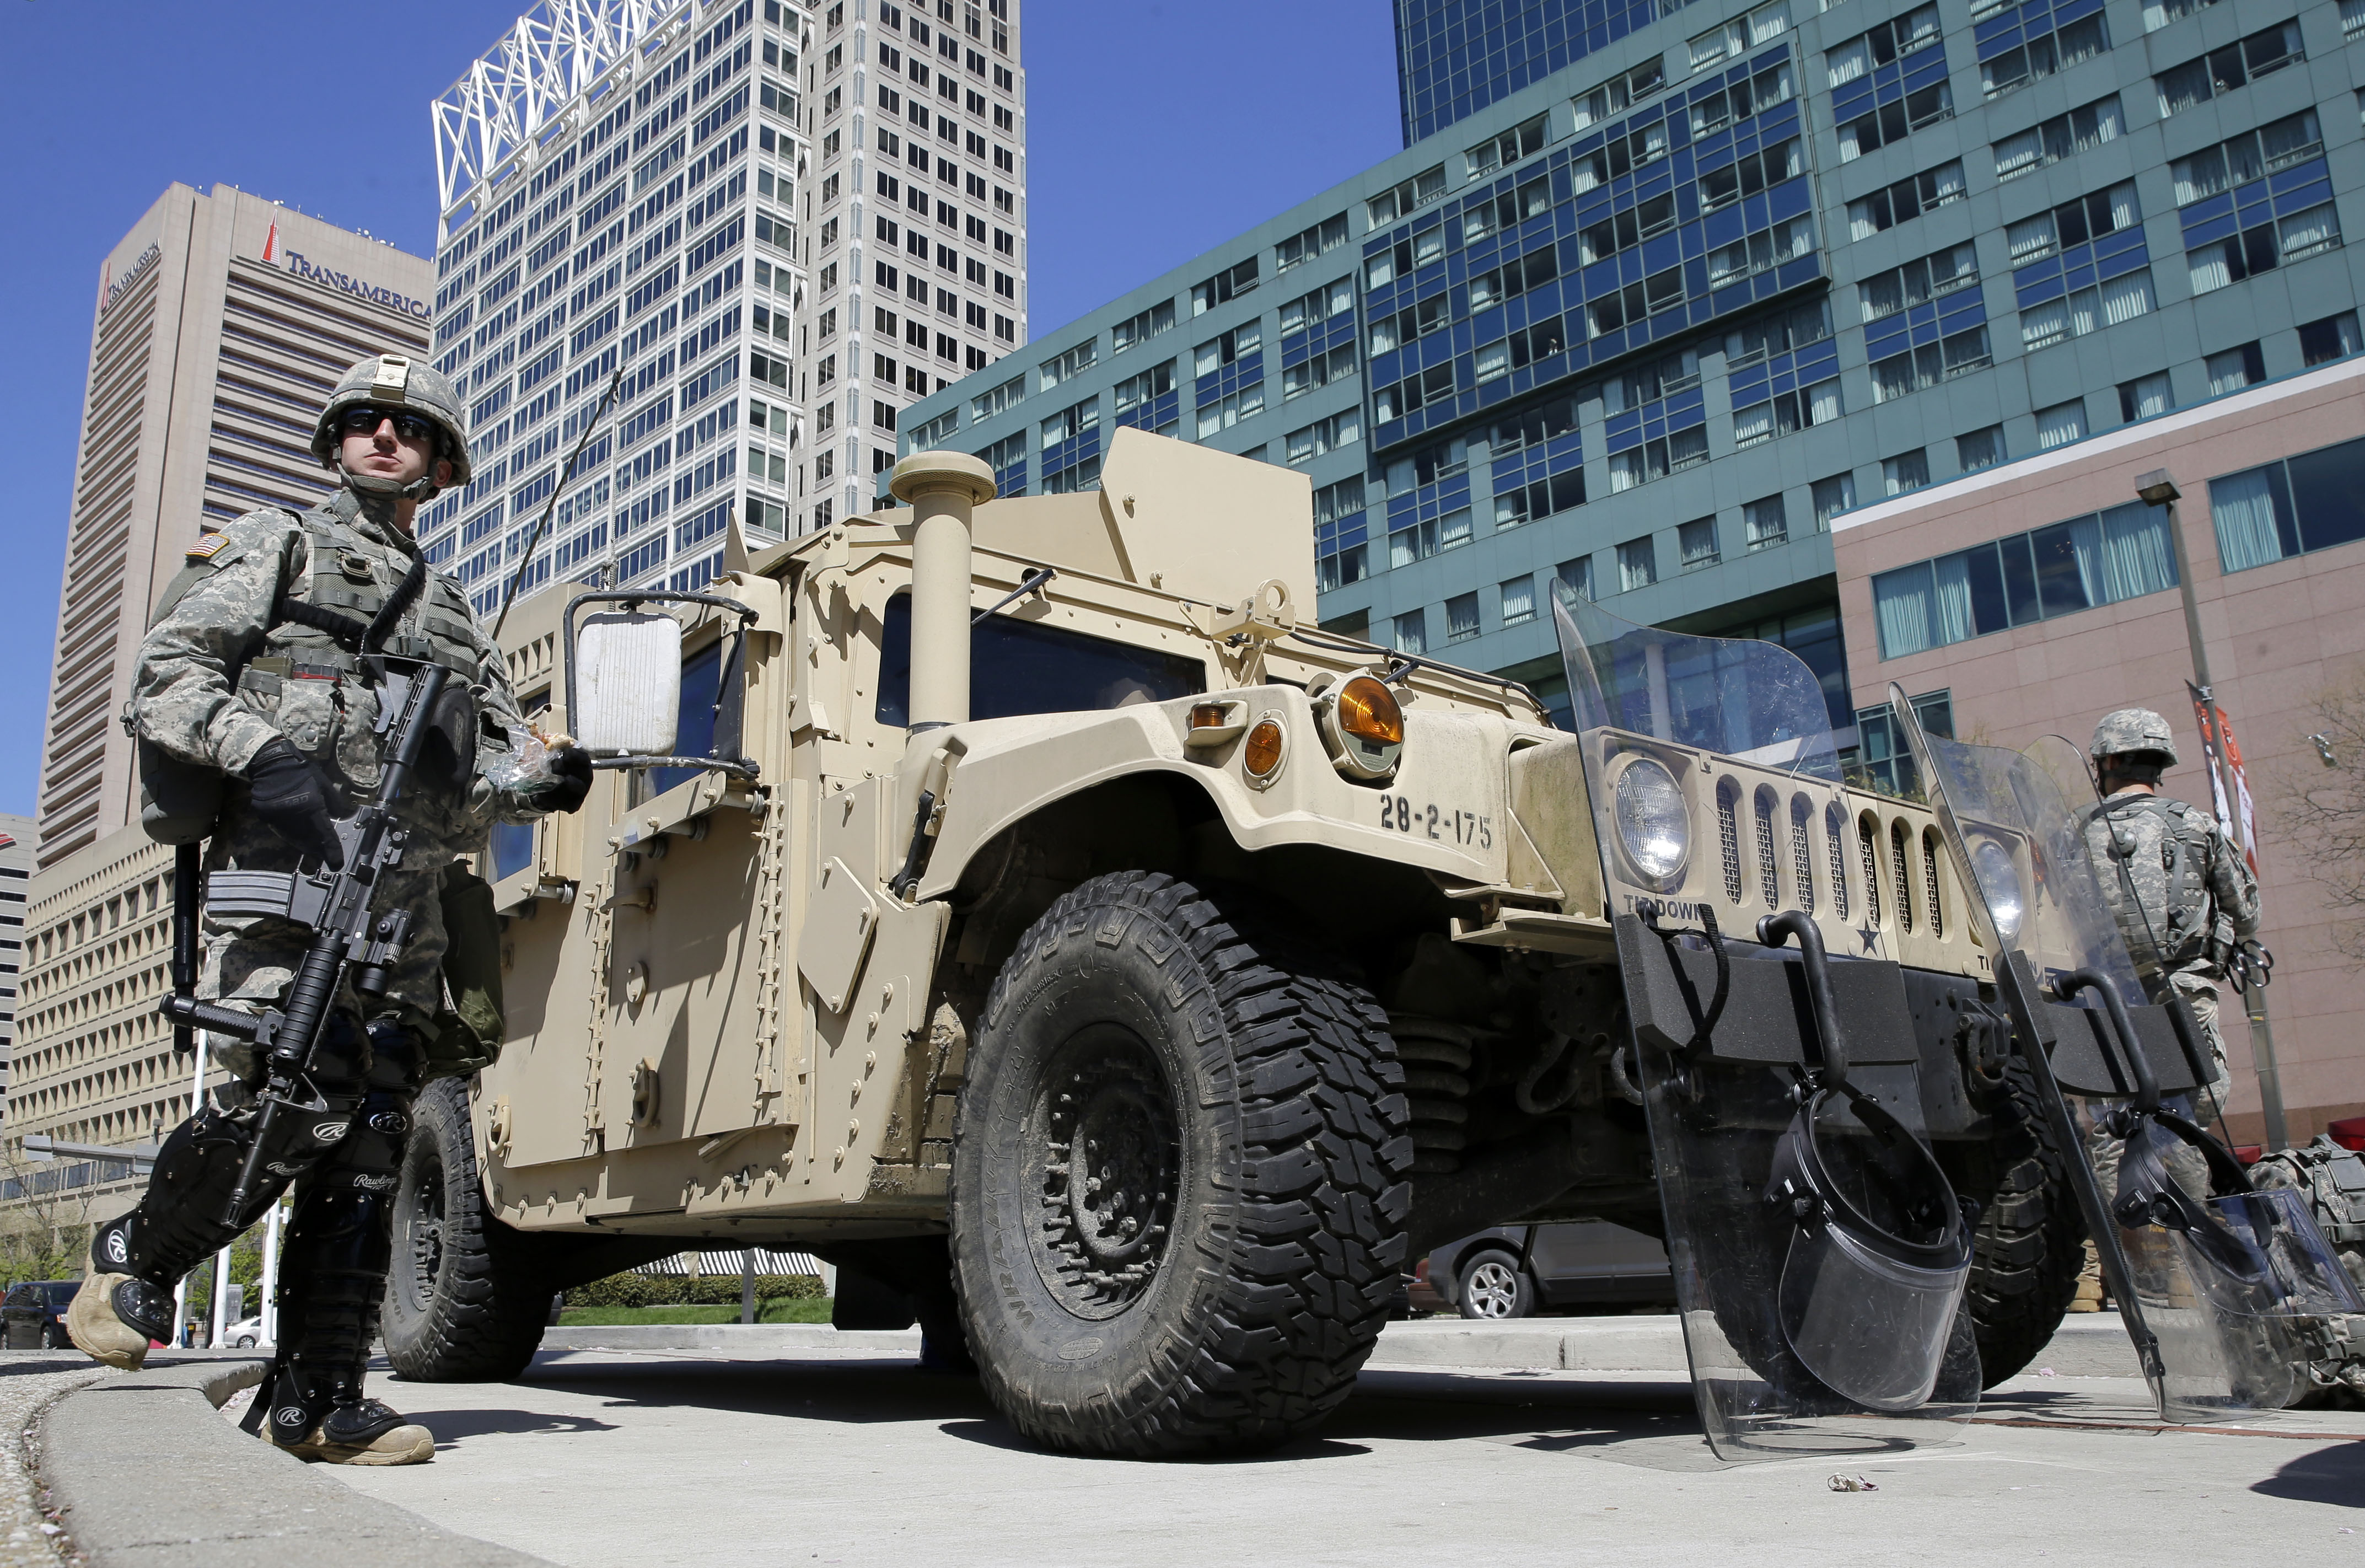 National-Guard-plans-exit-from-Baltimore